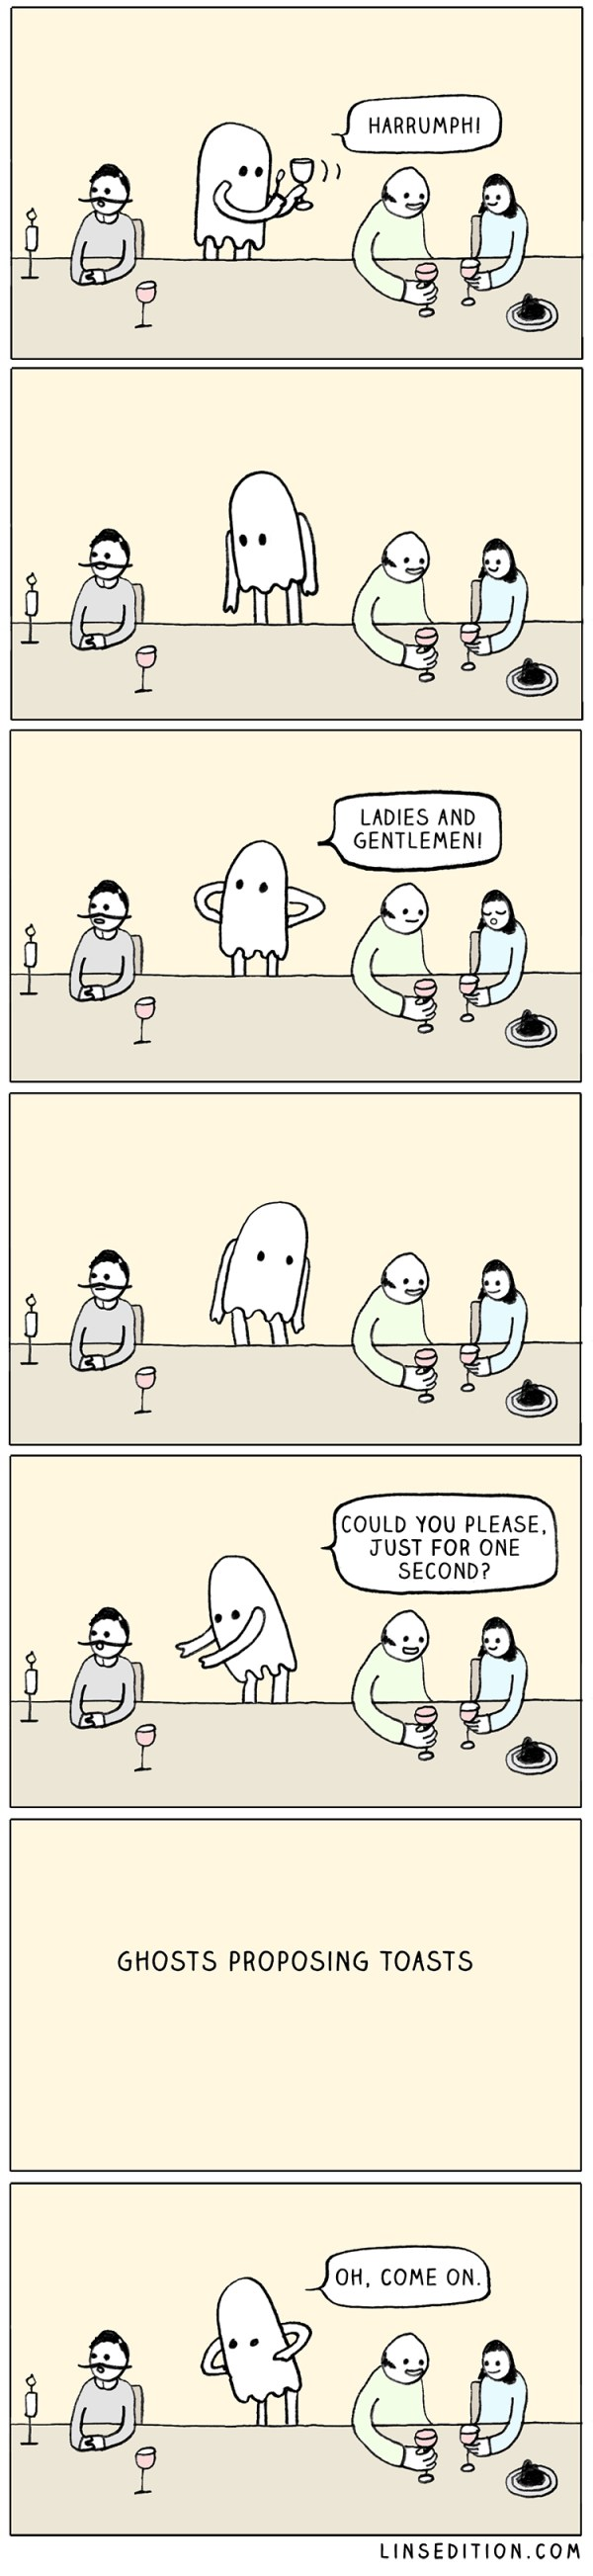 ghosts_proposing